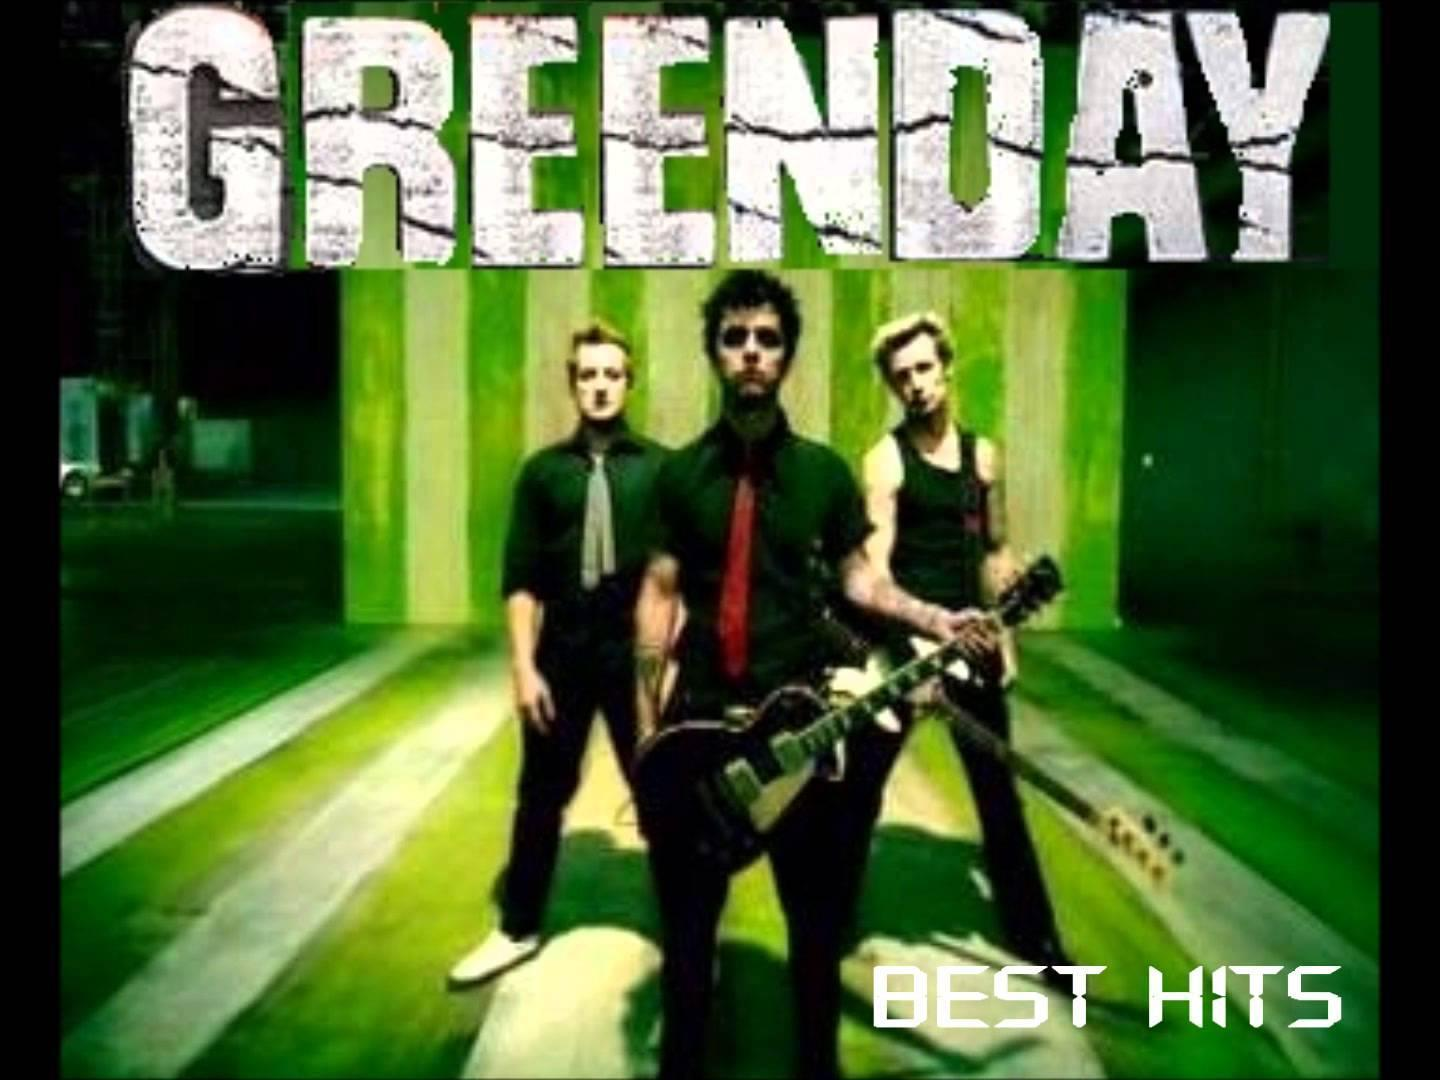 what is your favorite green day album?